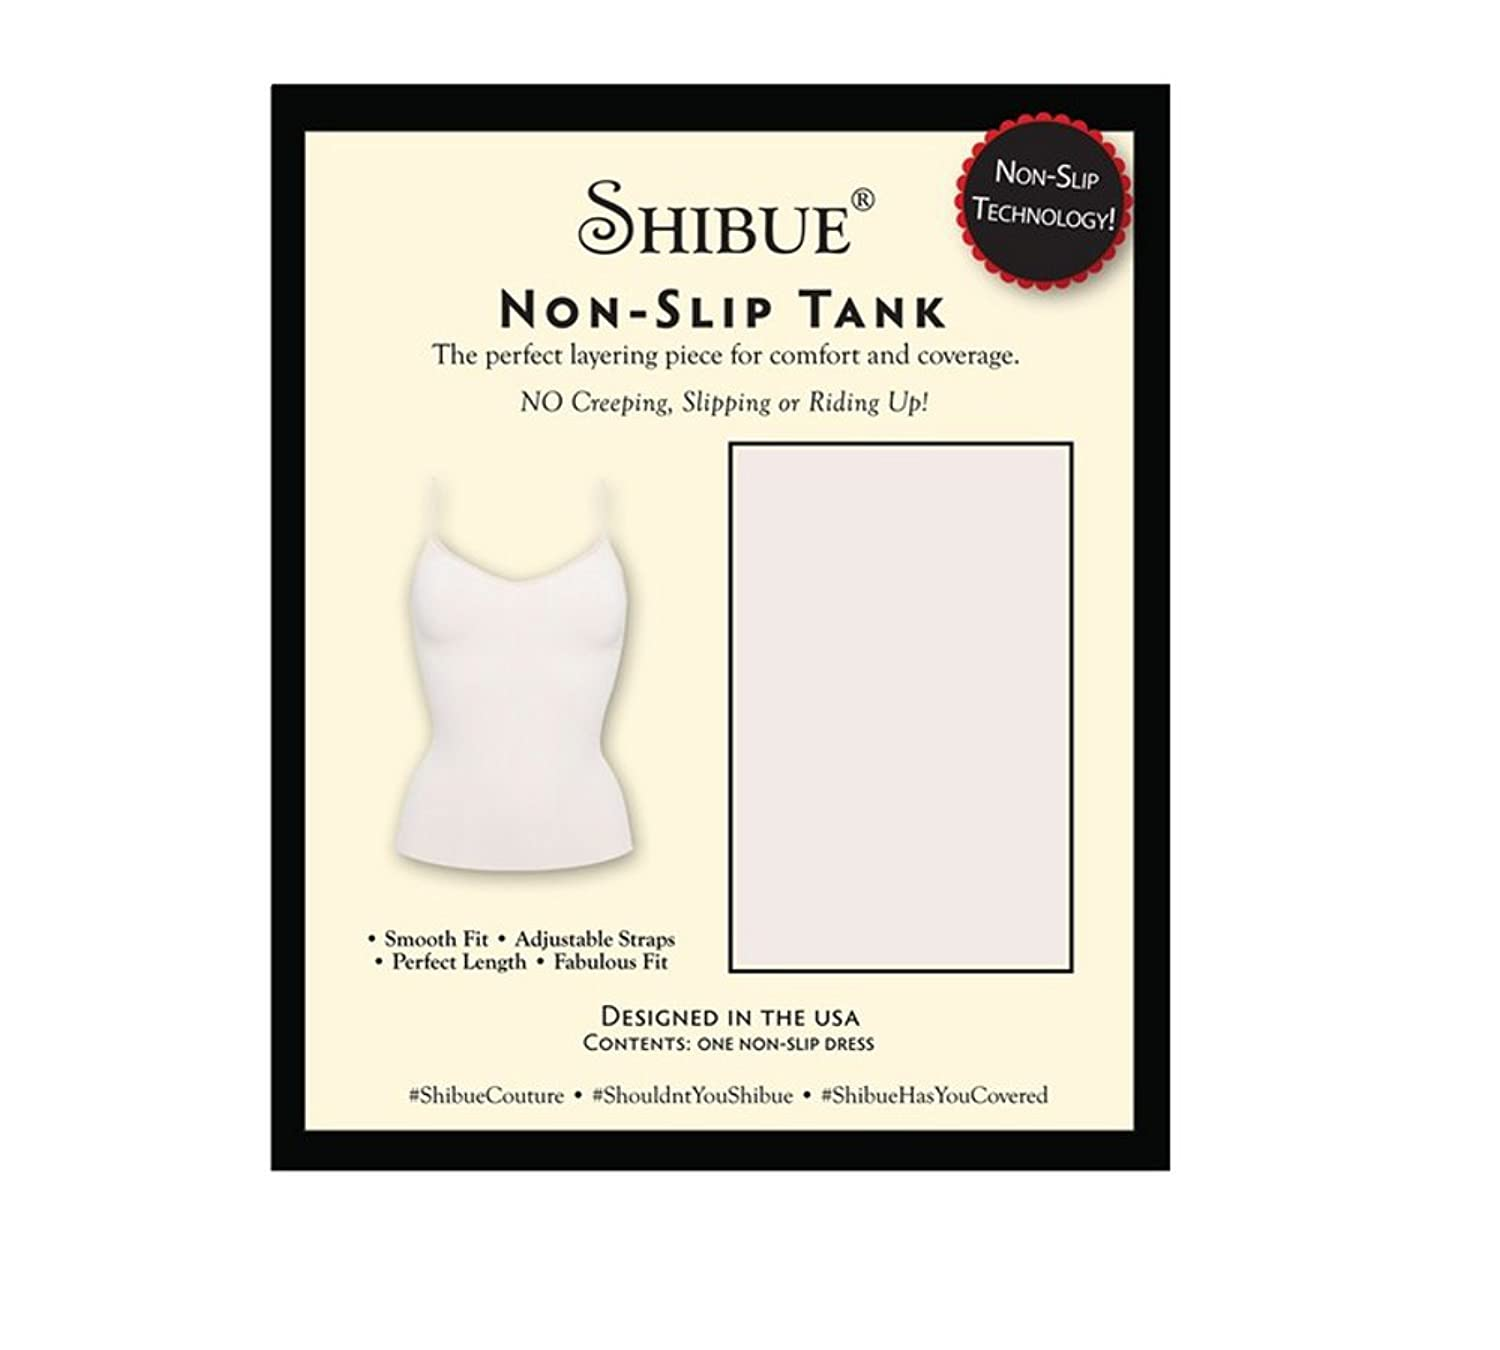 Shibue Couture Non-Slip Tank - Formendes Tank Top - Farbe Weiss, Größe S